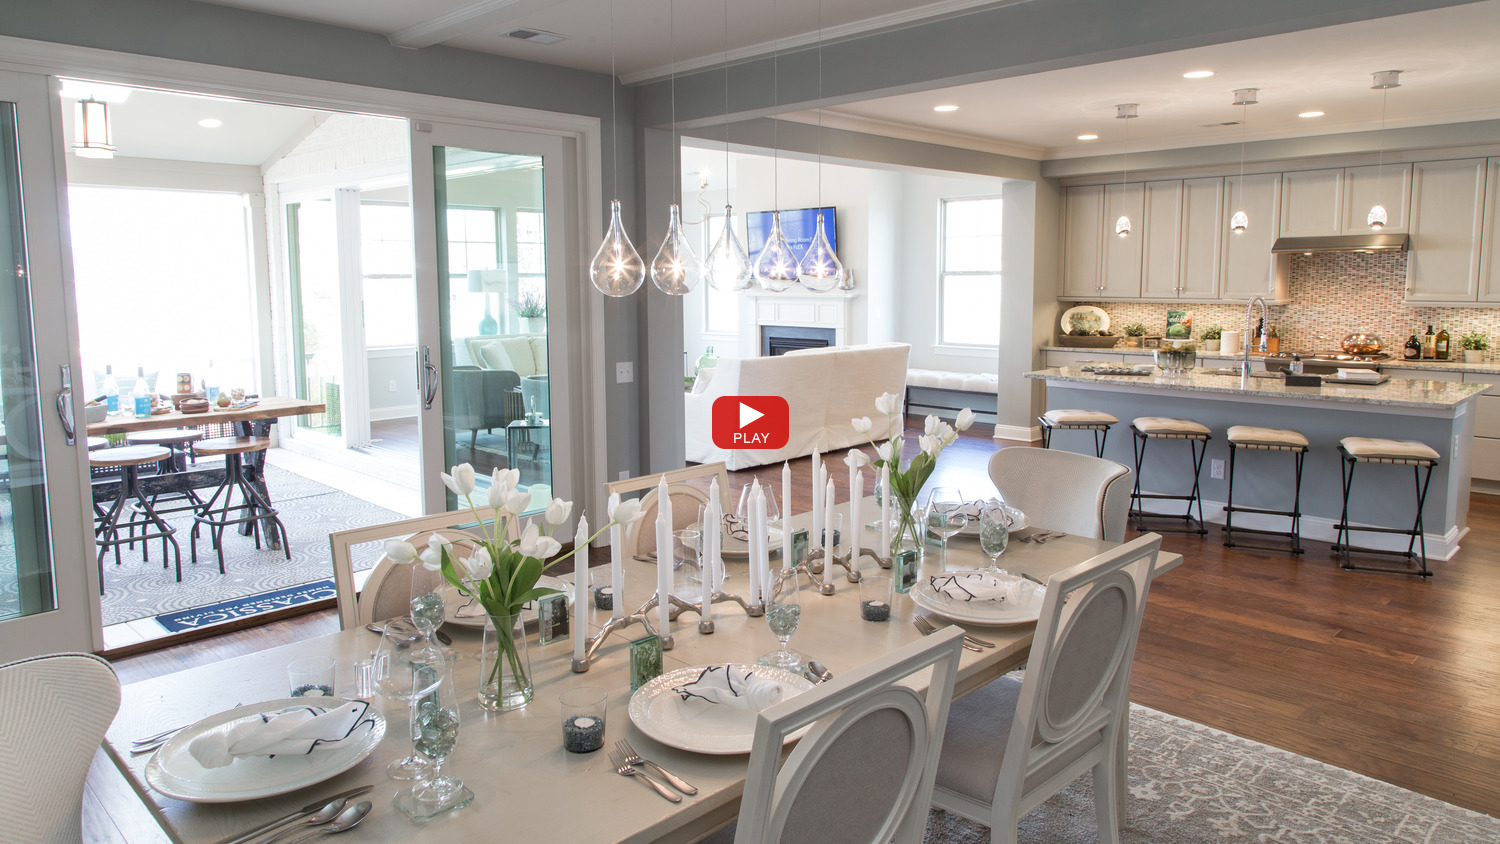 100 Decorated Model Homes Virtual Tours Decorated